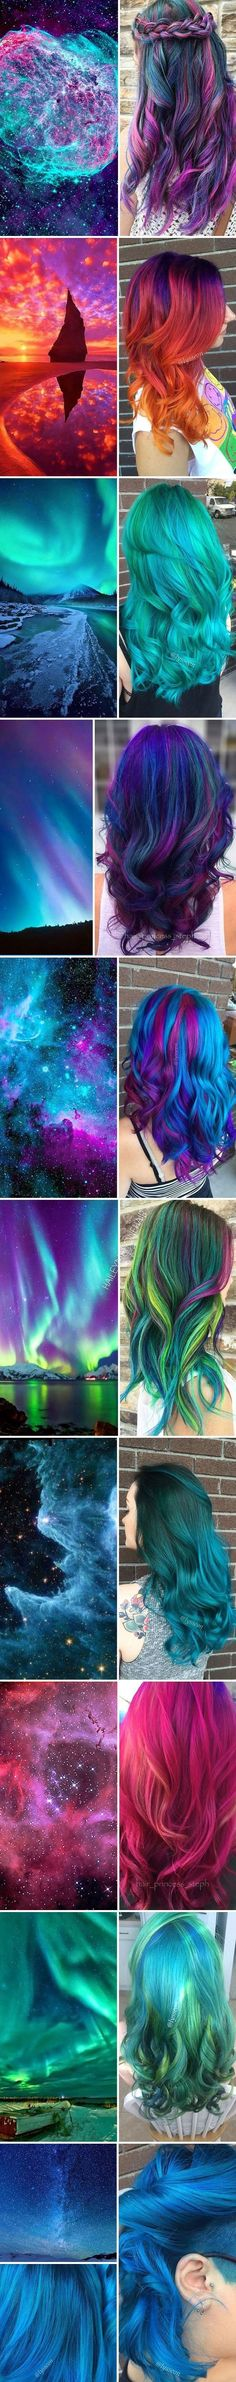 Mermaid hair Unicorn hair Rainbow hair by Toni Rose Larson Pink hair Neon blue hair Purple hair Color Melt H Pelo Multicolor, Color Fantasia, Coloured Hair, Dye My Hair, Diy Hair Dye, Grunge Hair, Mermaid Hair, Mermaid Makeup, Rainbow Hair